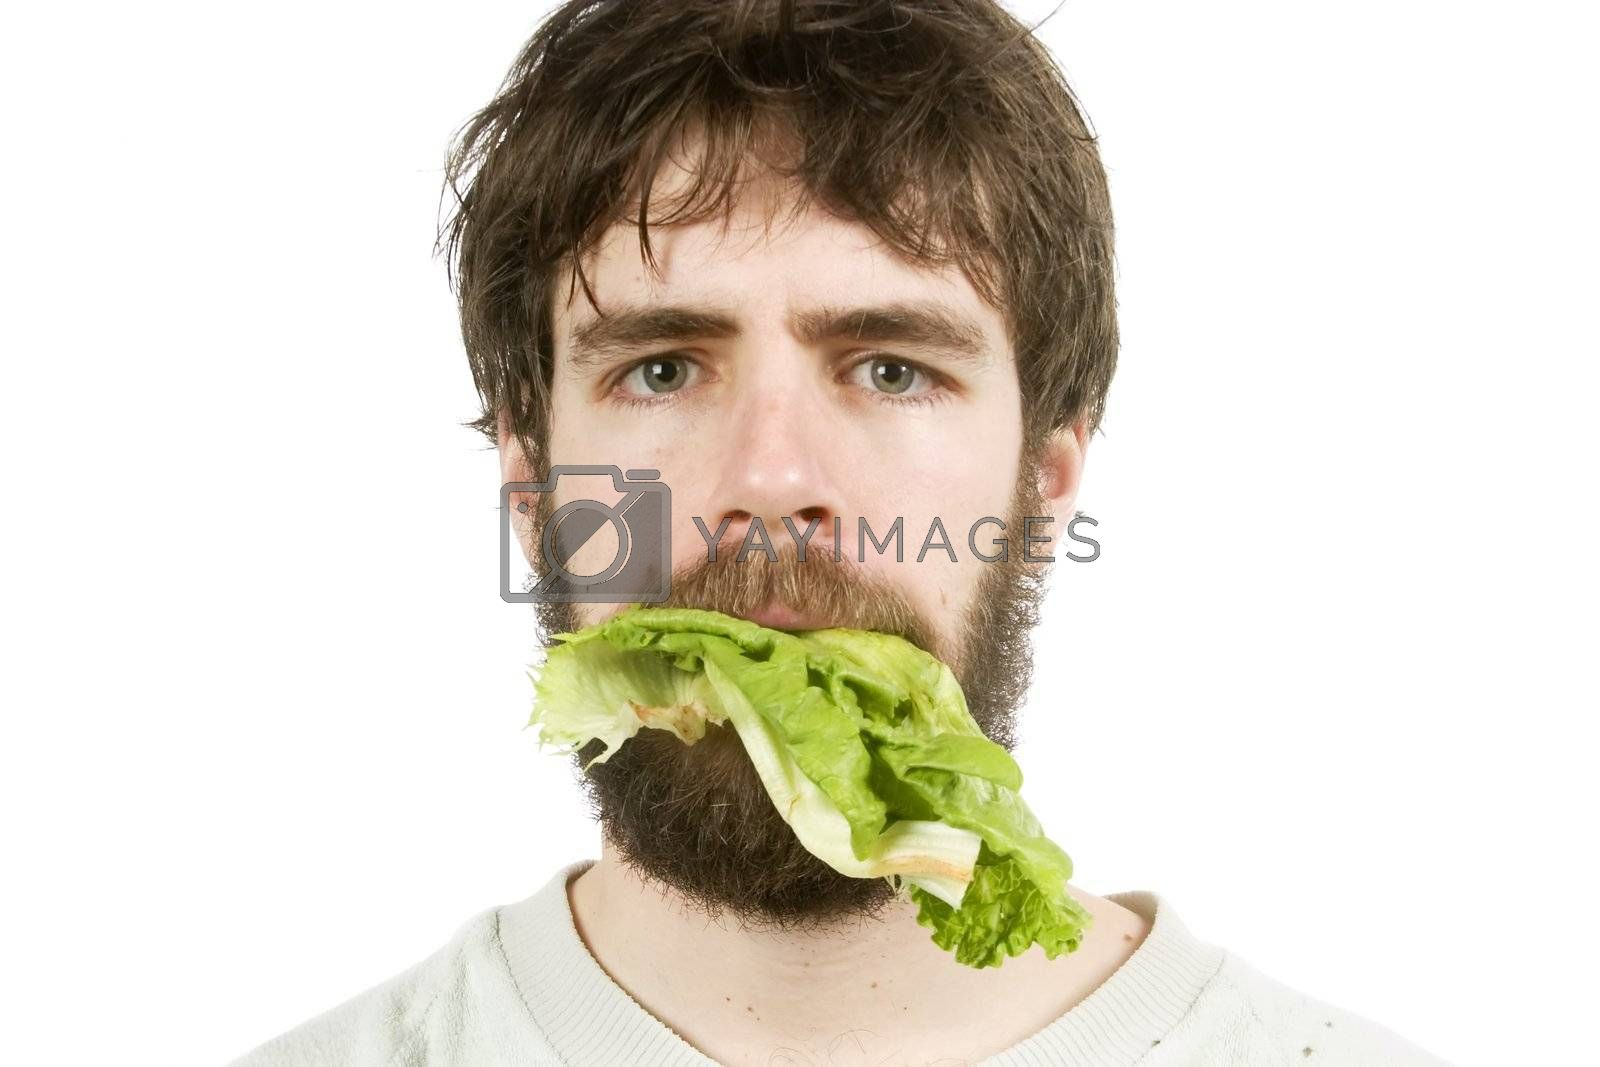 A young male with lettuce in his mouth, looking unimpressed.